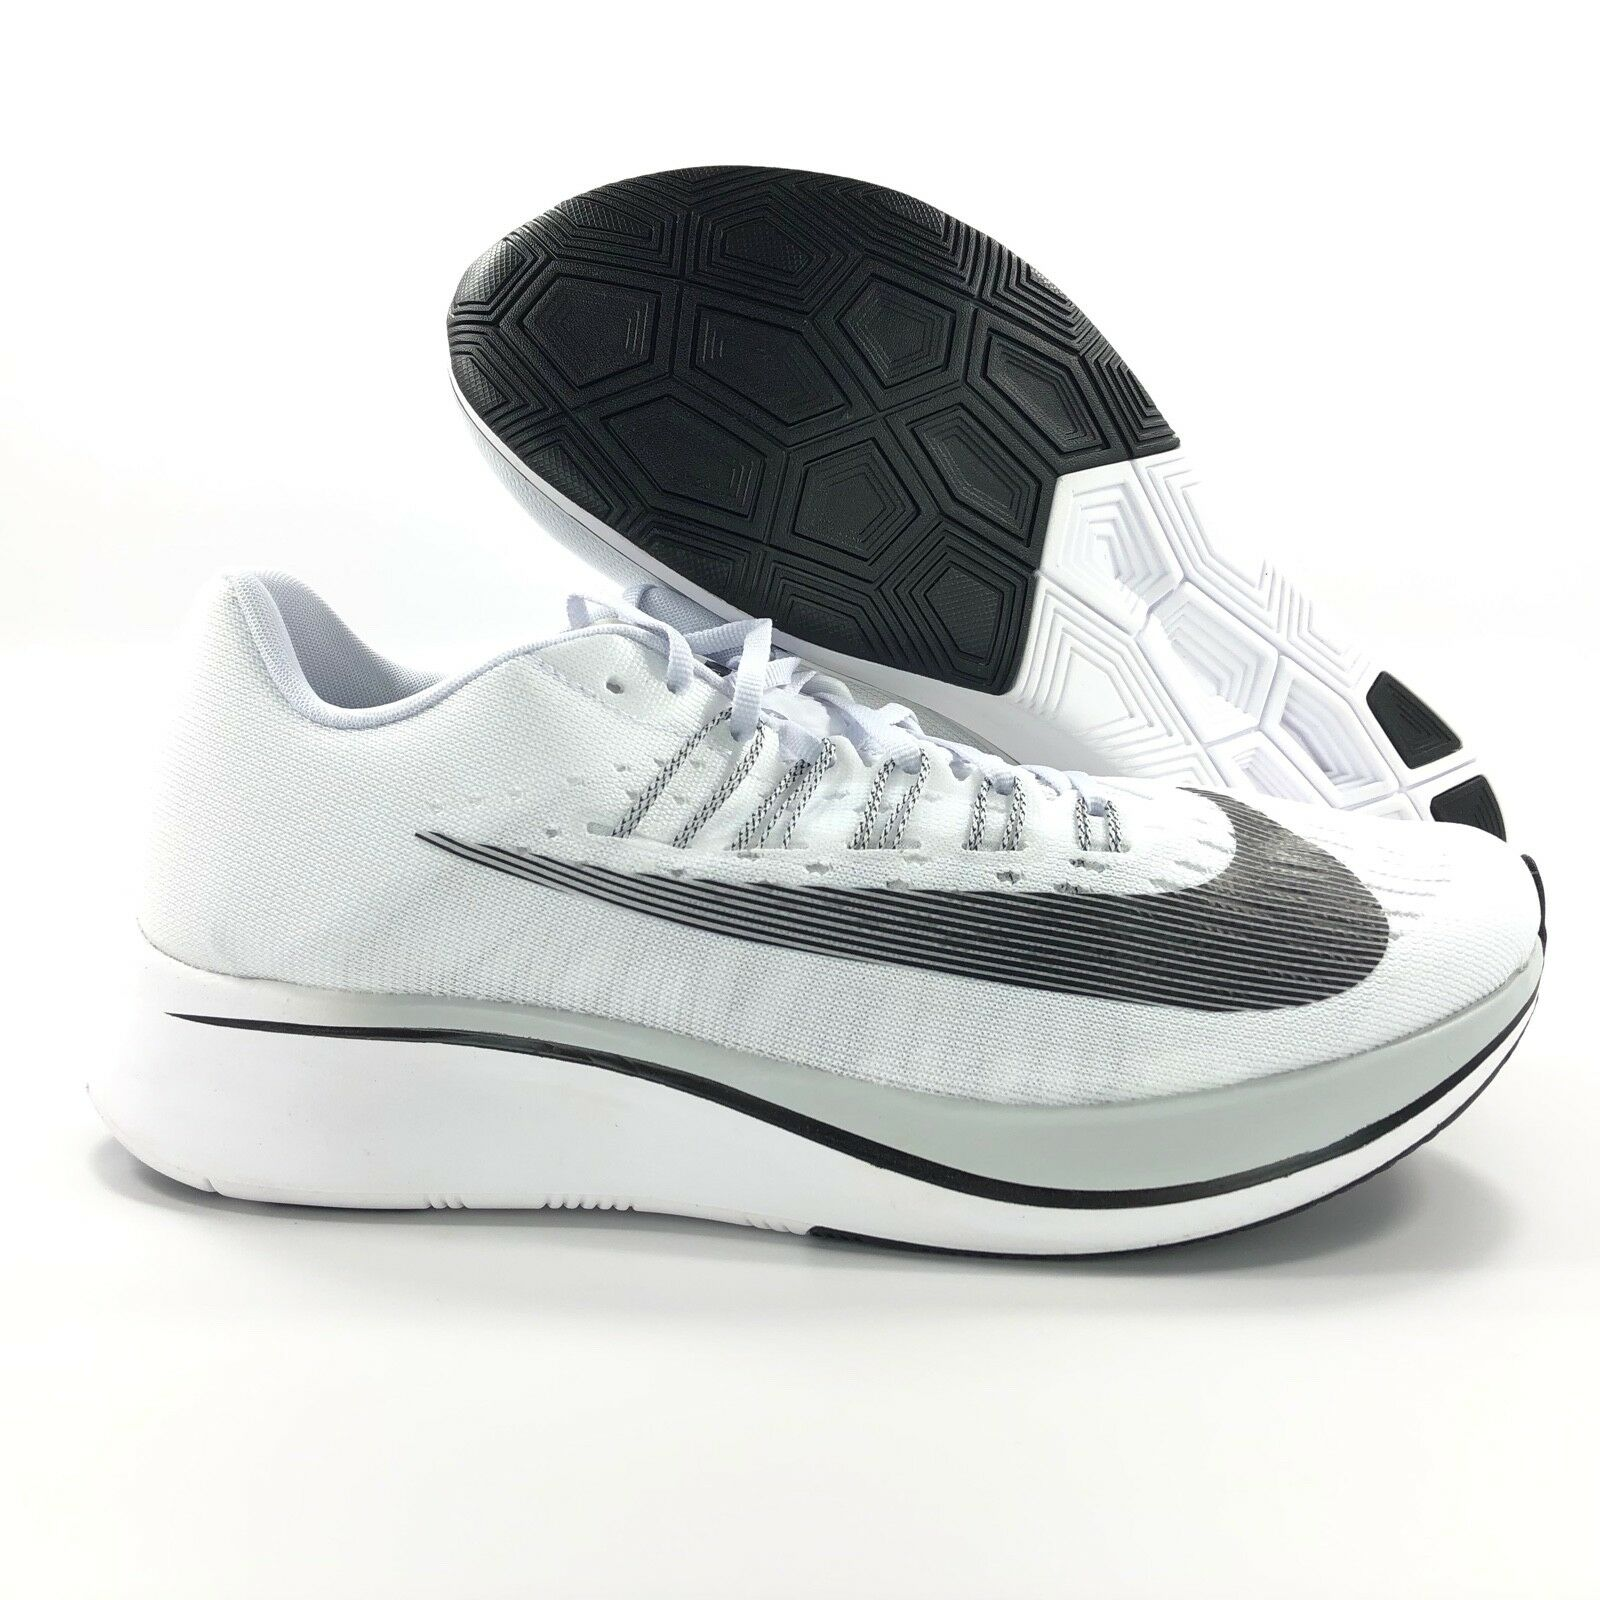 Nike Zoom Fly White Black Pure Platinum Grey Running shoes 880848-100 Men's 8-9.5